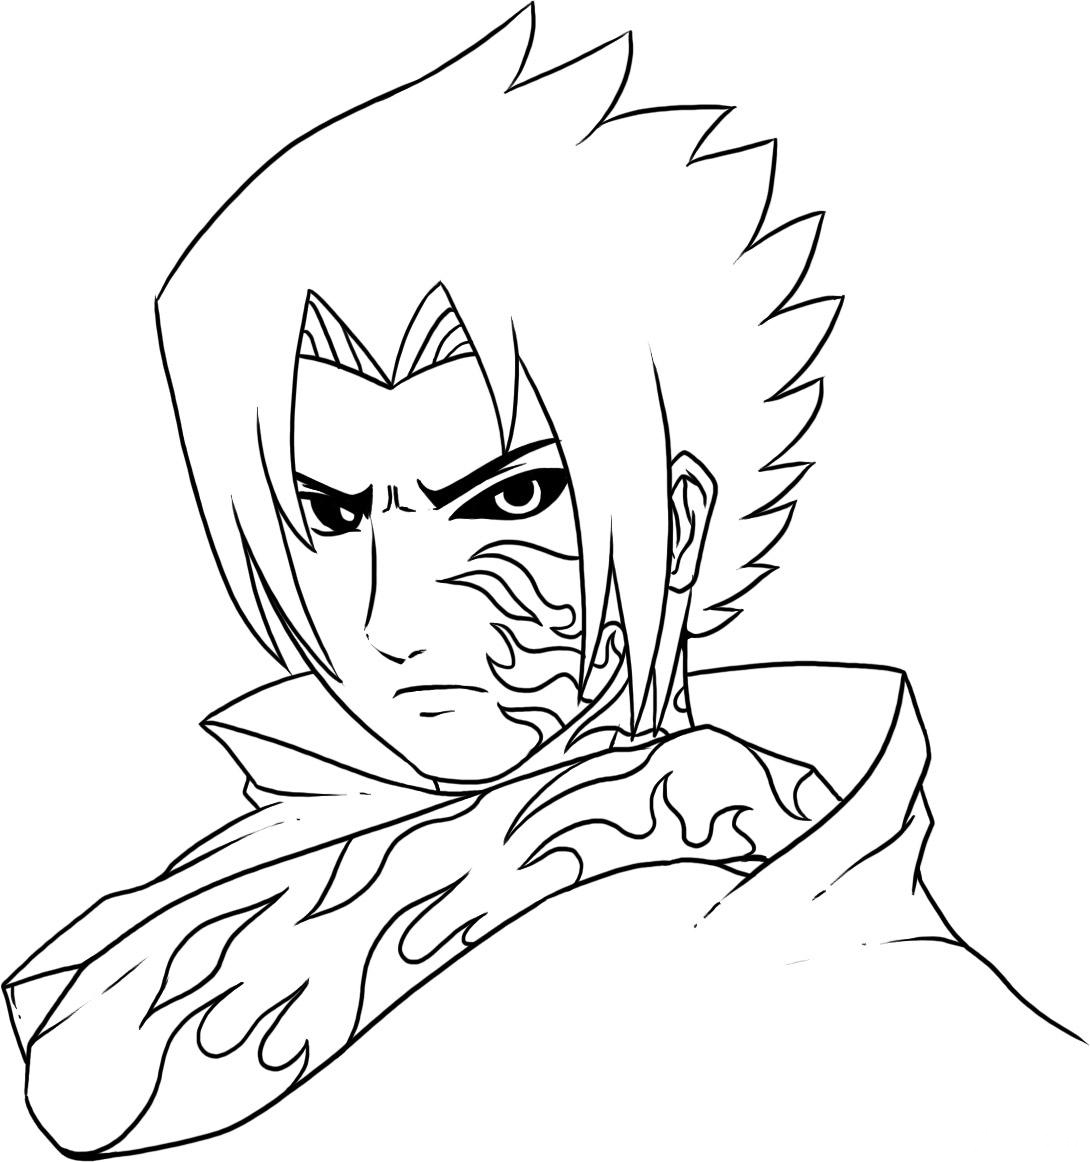 Sasuke Curse Mark Chidori Drawings